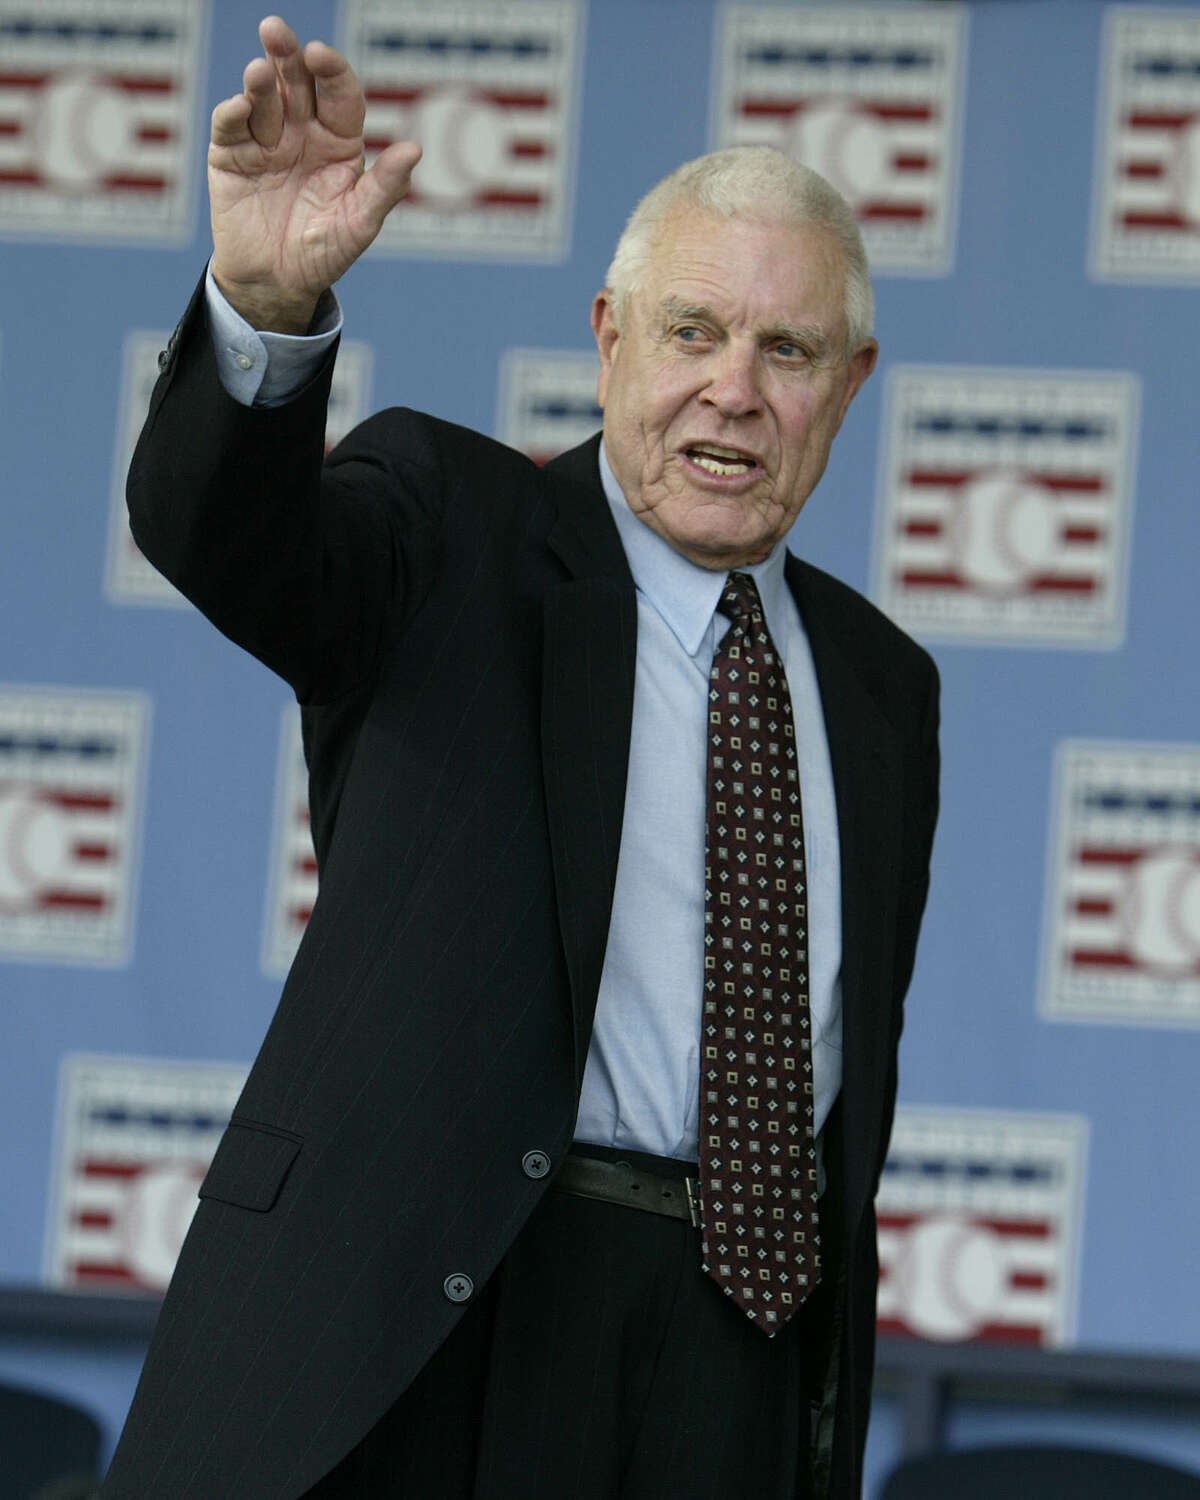 Broadcaster Lon Simmons, the longtime voice of baseball in the San Francisco Bay area, waves at the end of the 2004 National Baseball Hall of Fame induction ceremonies Sunday, July 25, 2004 in Cooperstown, N.Y. Simmons is the recipient of the Ford C. Frick Award given annually to a baseball broadcaster. (AP Photo/John Dunn) Ran on: 07-26-2004 Photo caption Dummy text goes here. Dummy text goes here. Dummy text goes here. Dummy text goes here. Dummy text goes here. Dummy text goes here.Dummy text goes here. Dummy text goes here. Ran on: 07-26-2004 ProductNameChronicle